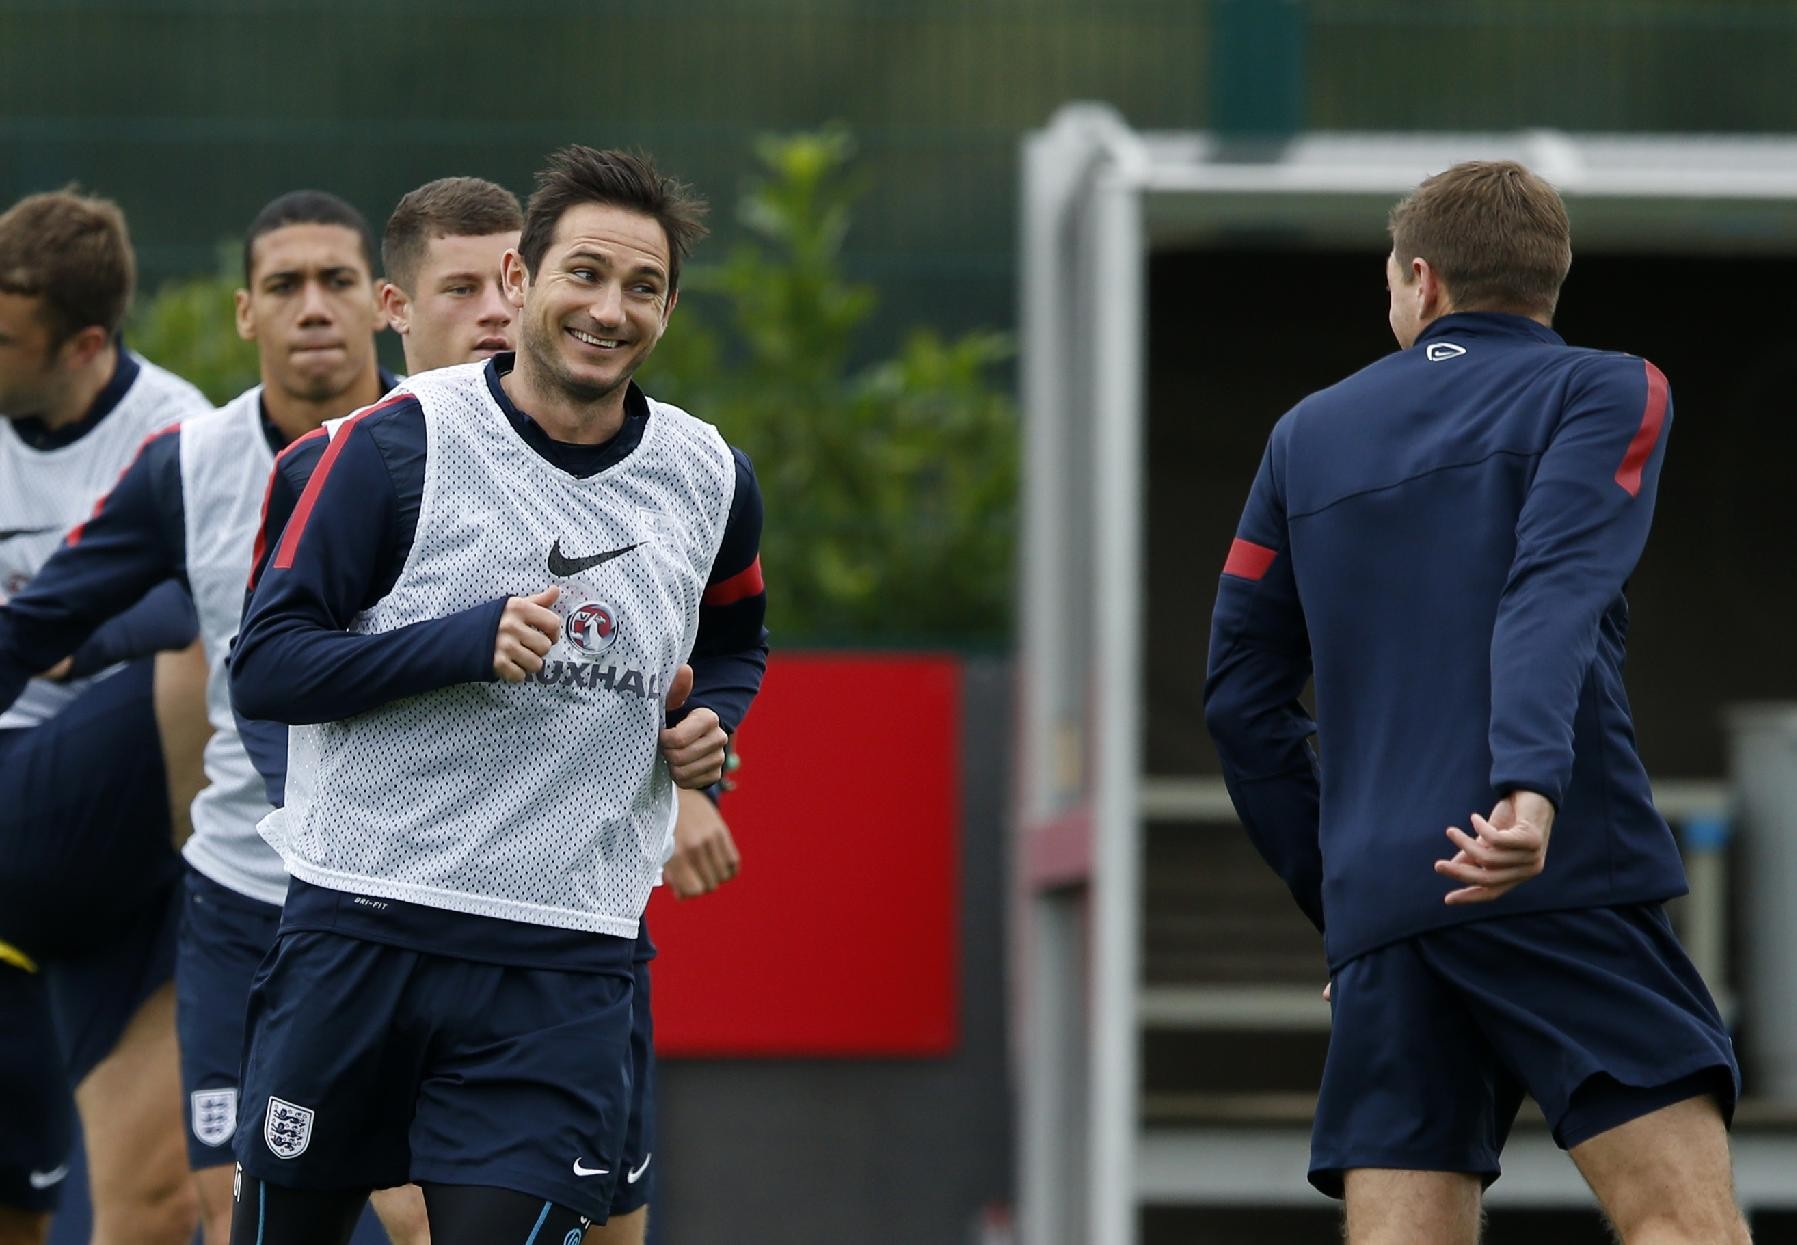 England's Frank Lampard, second right, laughs with captain Steven Gerrard, right, during a training session at facilities in London Colney, England, Monday, Oct. 14, 2013. England will play Poland in a World Cup Group H qualification soccer match at Wembley stadium in London on Tuesday